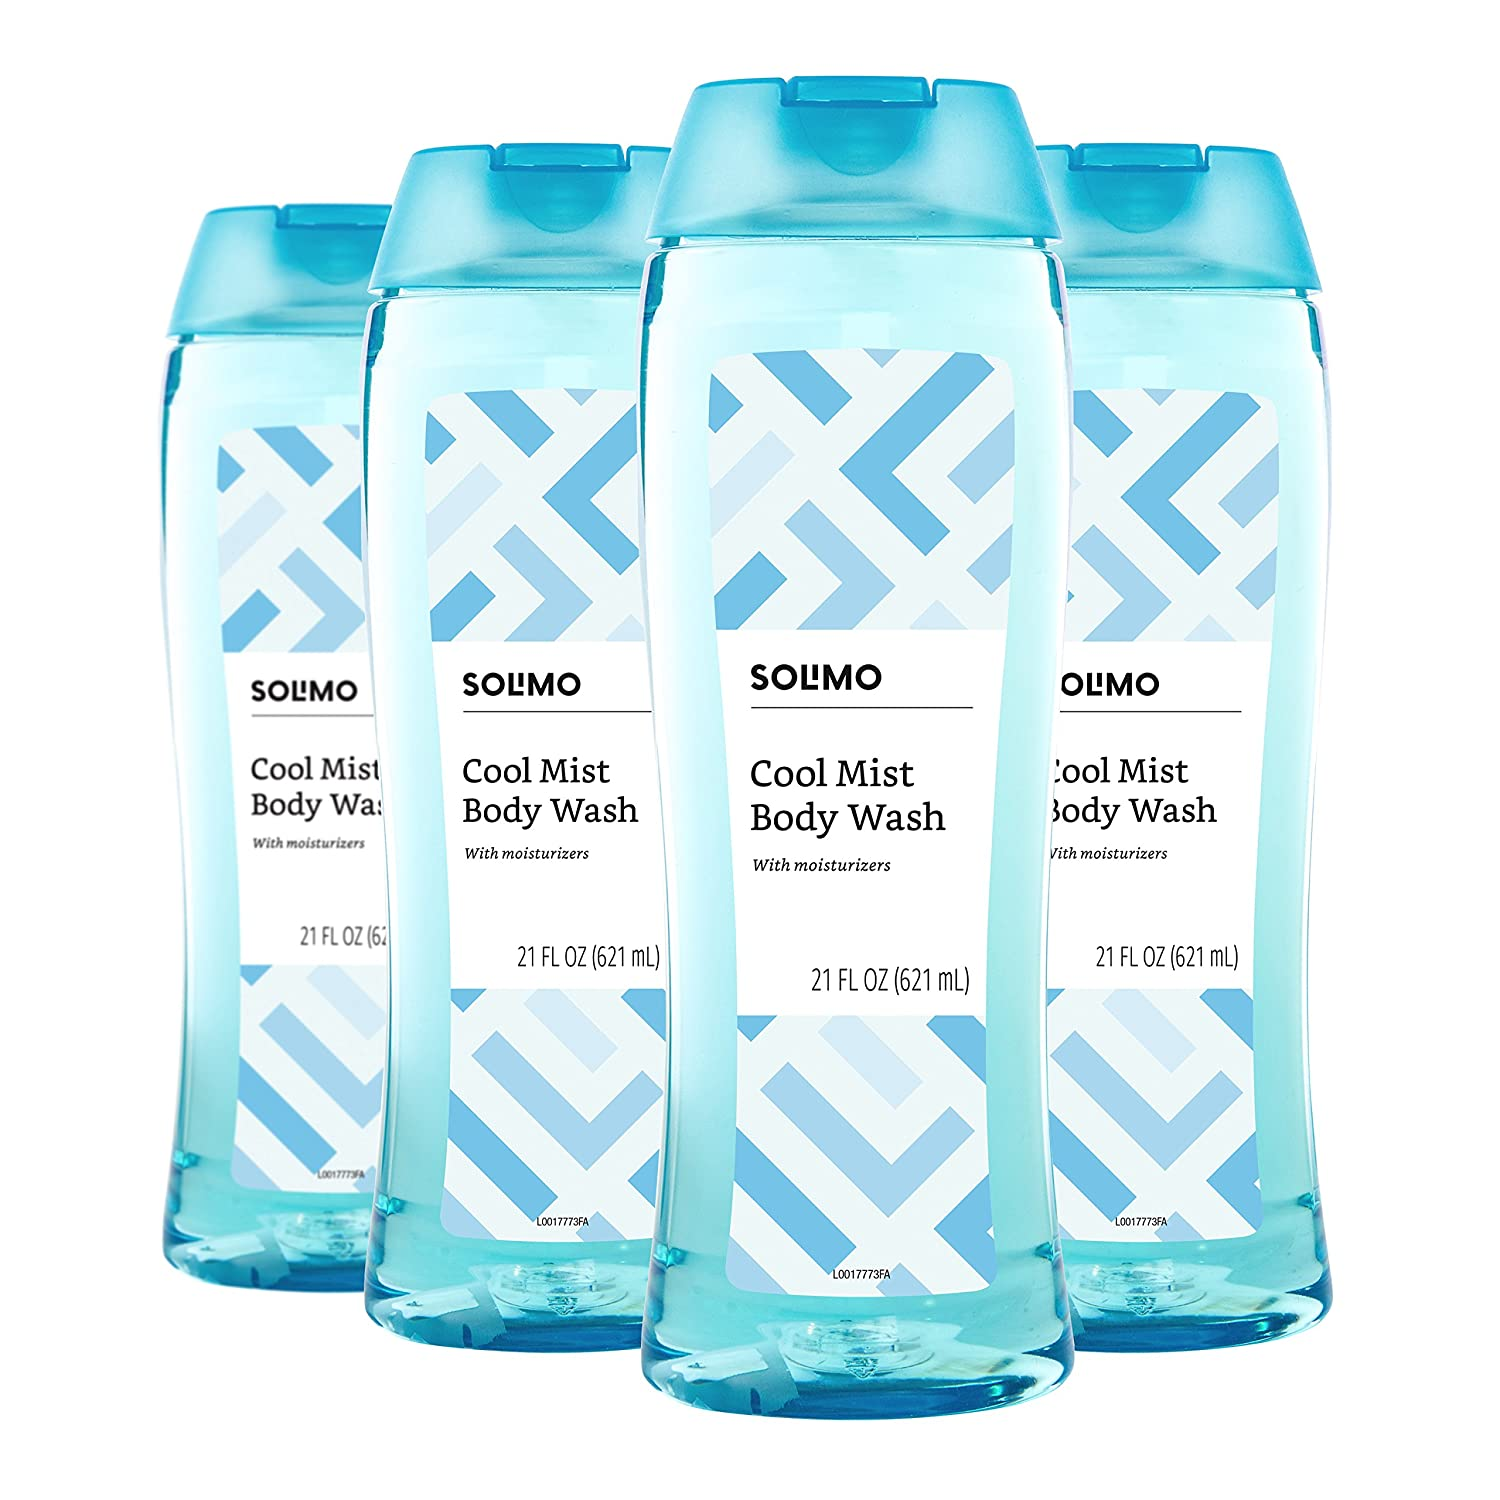 Solimo Cool Mist Body Wash